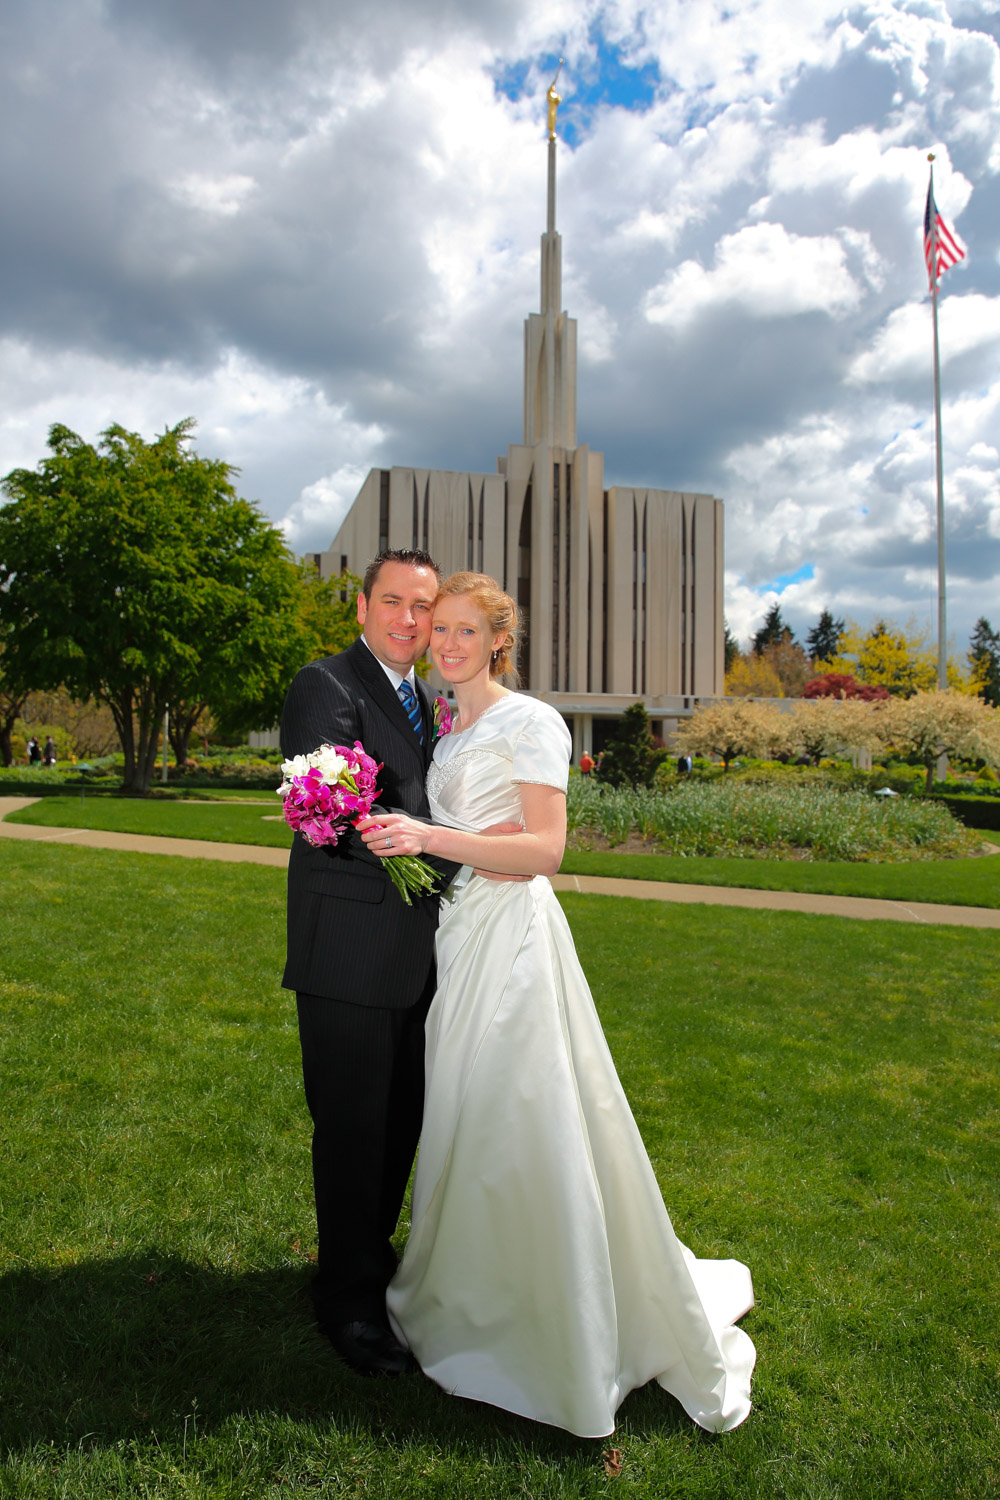 Wedding Photos LDS Temple Bellevue Washington21.jpg